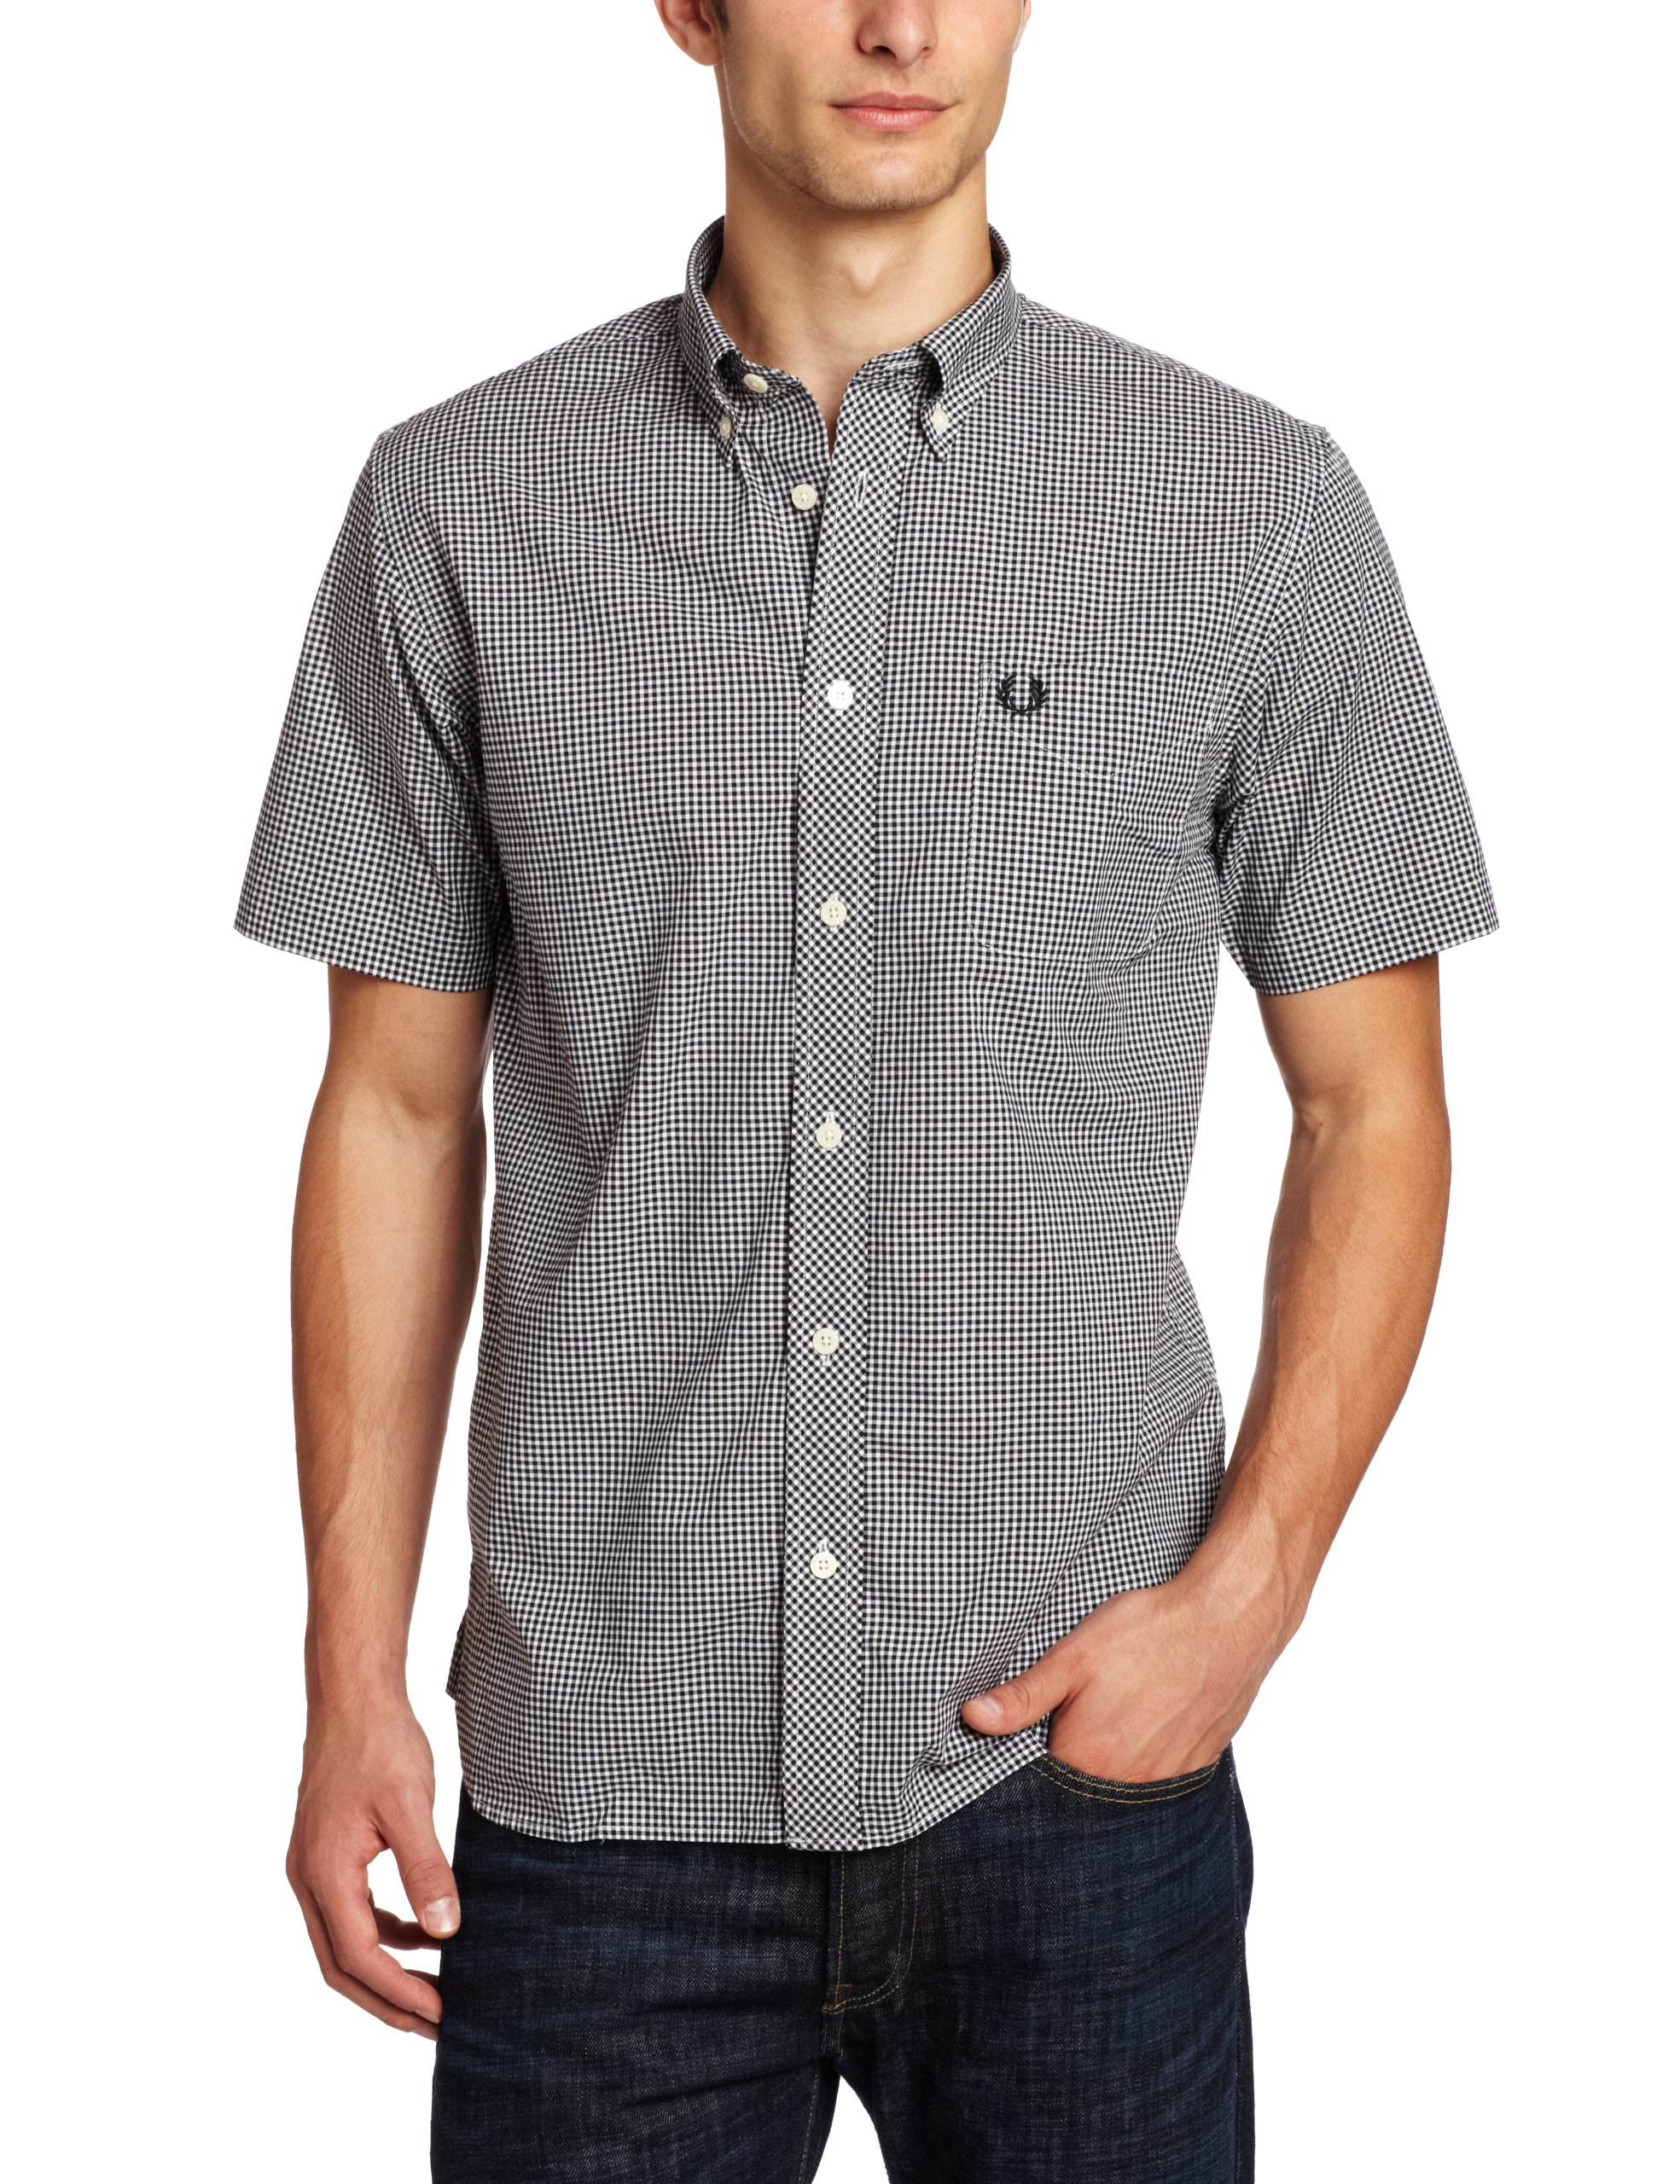 Fred Perry Men's Short Sleeve Gingham Shirt, Black, Large